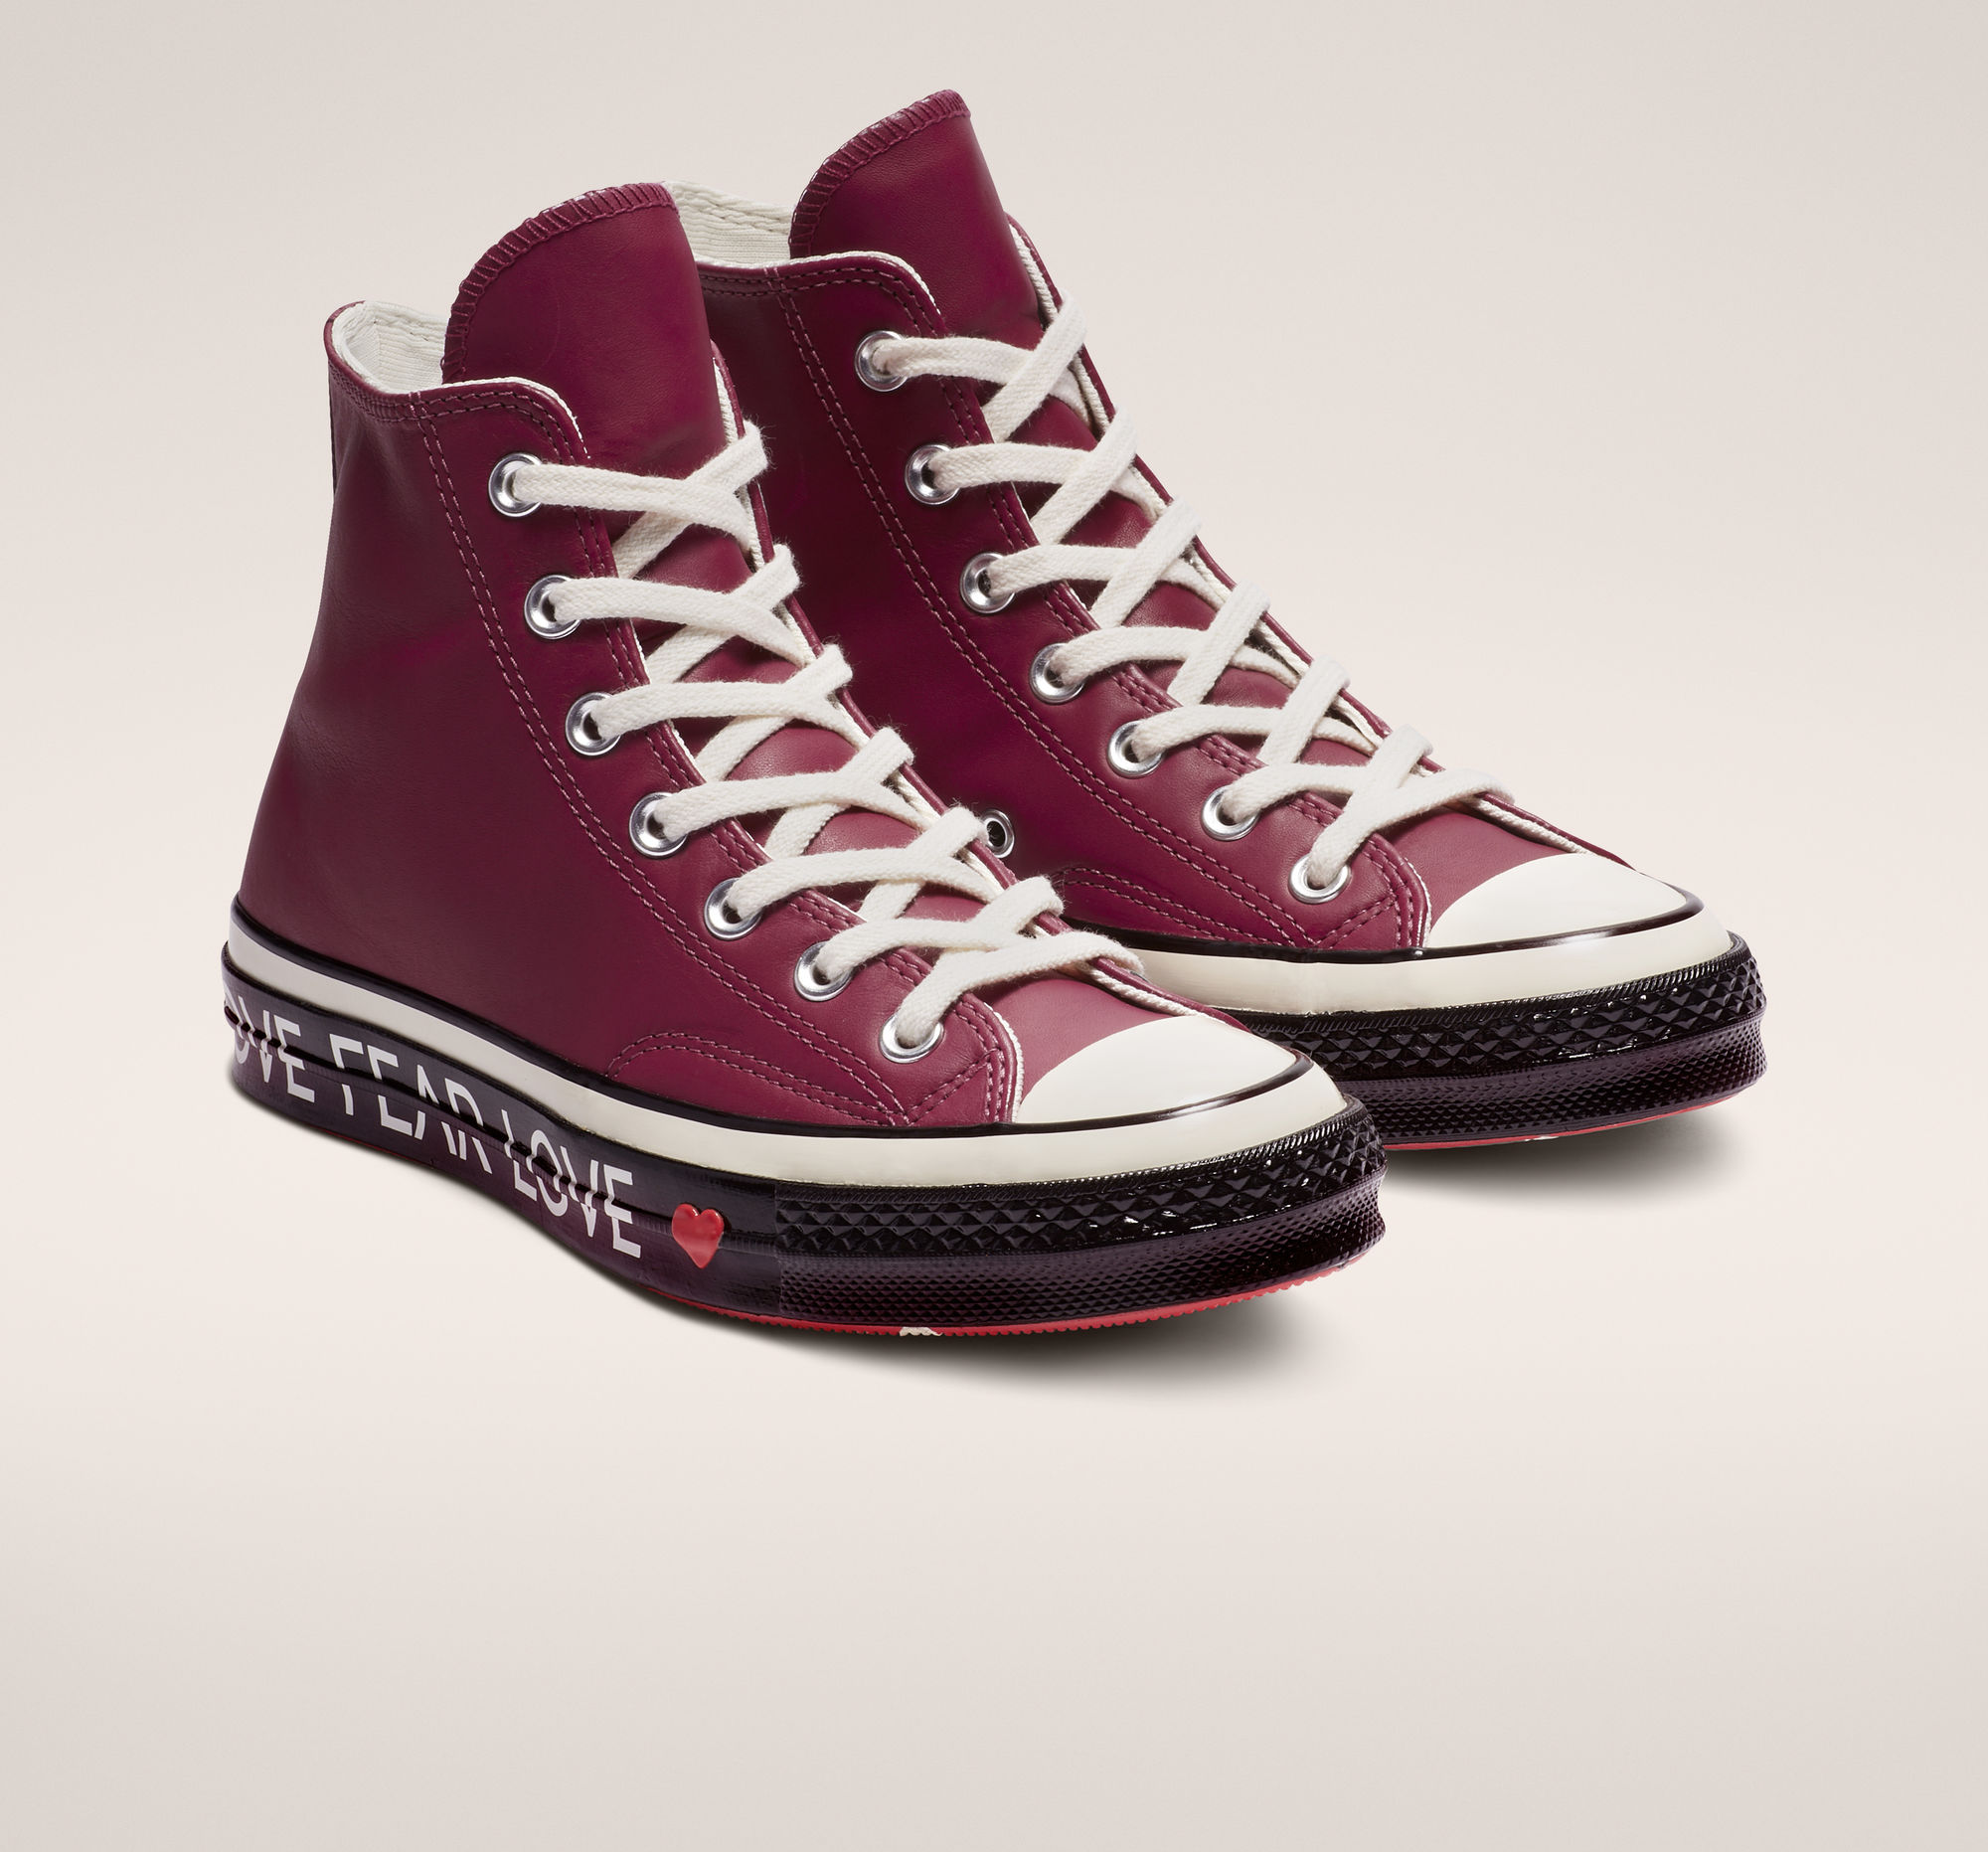 Chuck 70 Love Graphic High Top in Rhubarb/Egret/Black